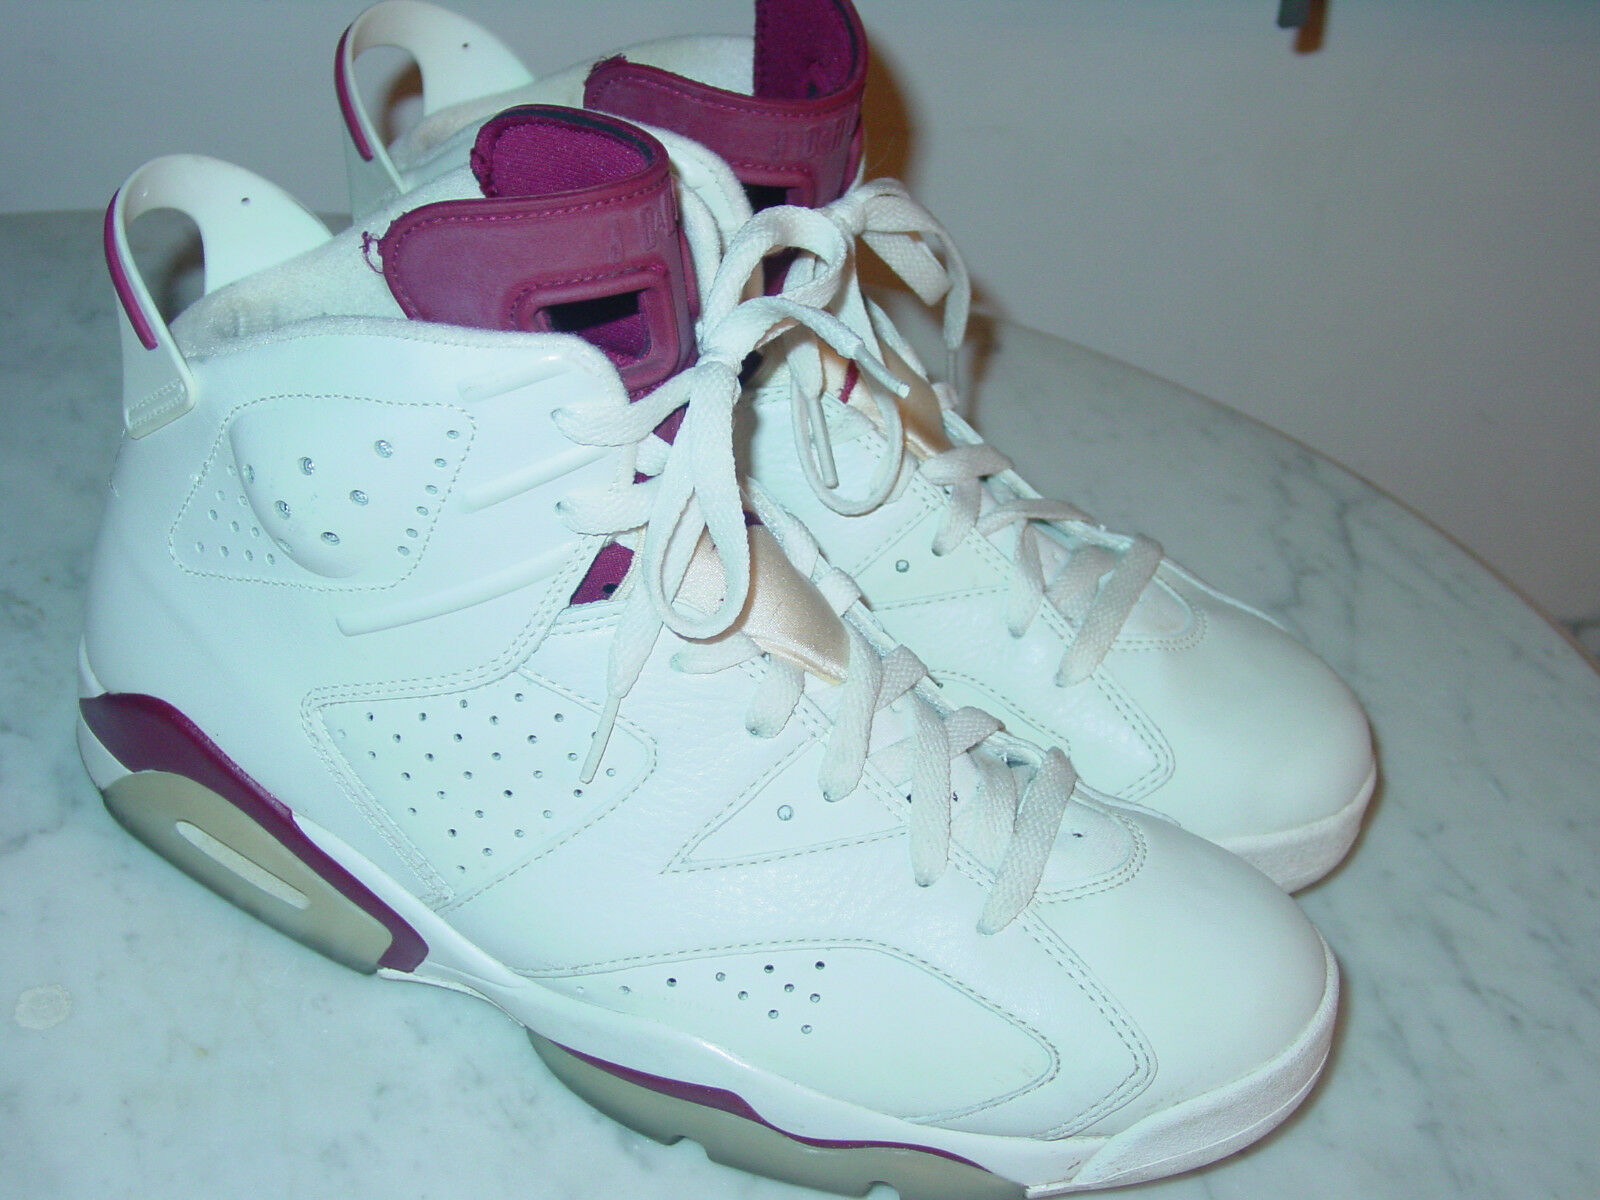 2015 Nike Air Jordan Retro 6  Maroon  Off White New Maroon shoes  Size 10.5